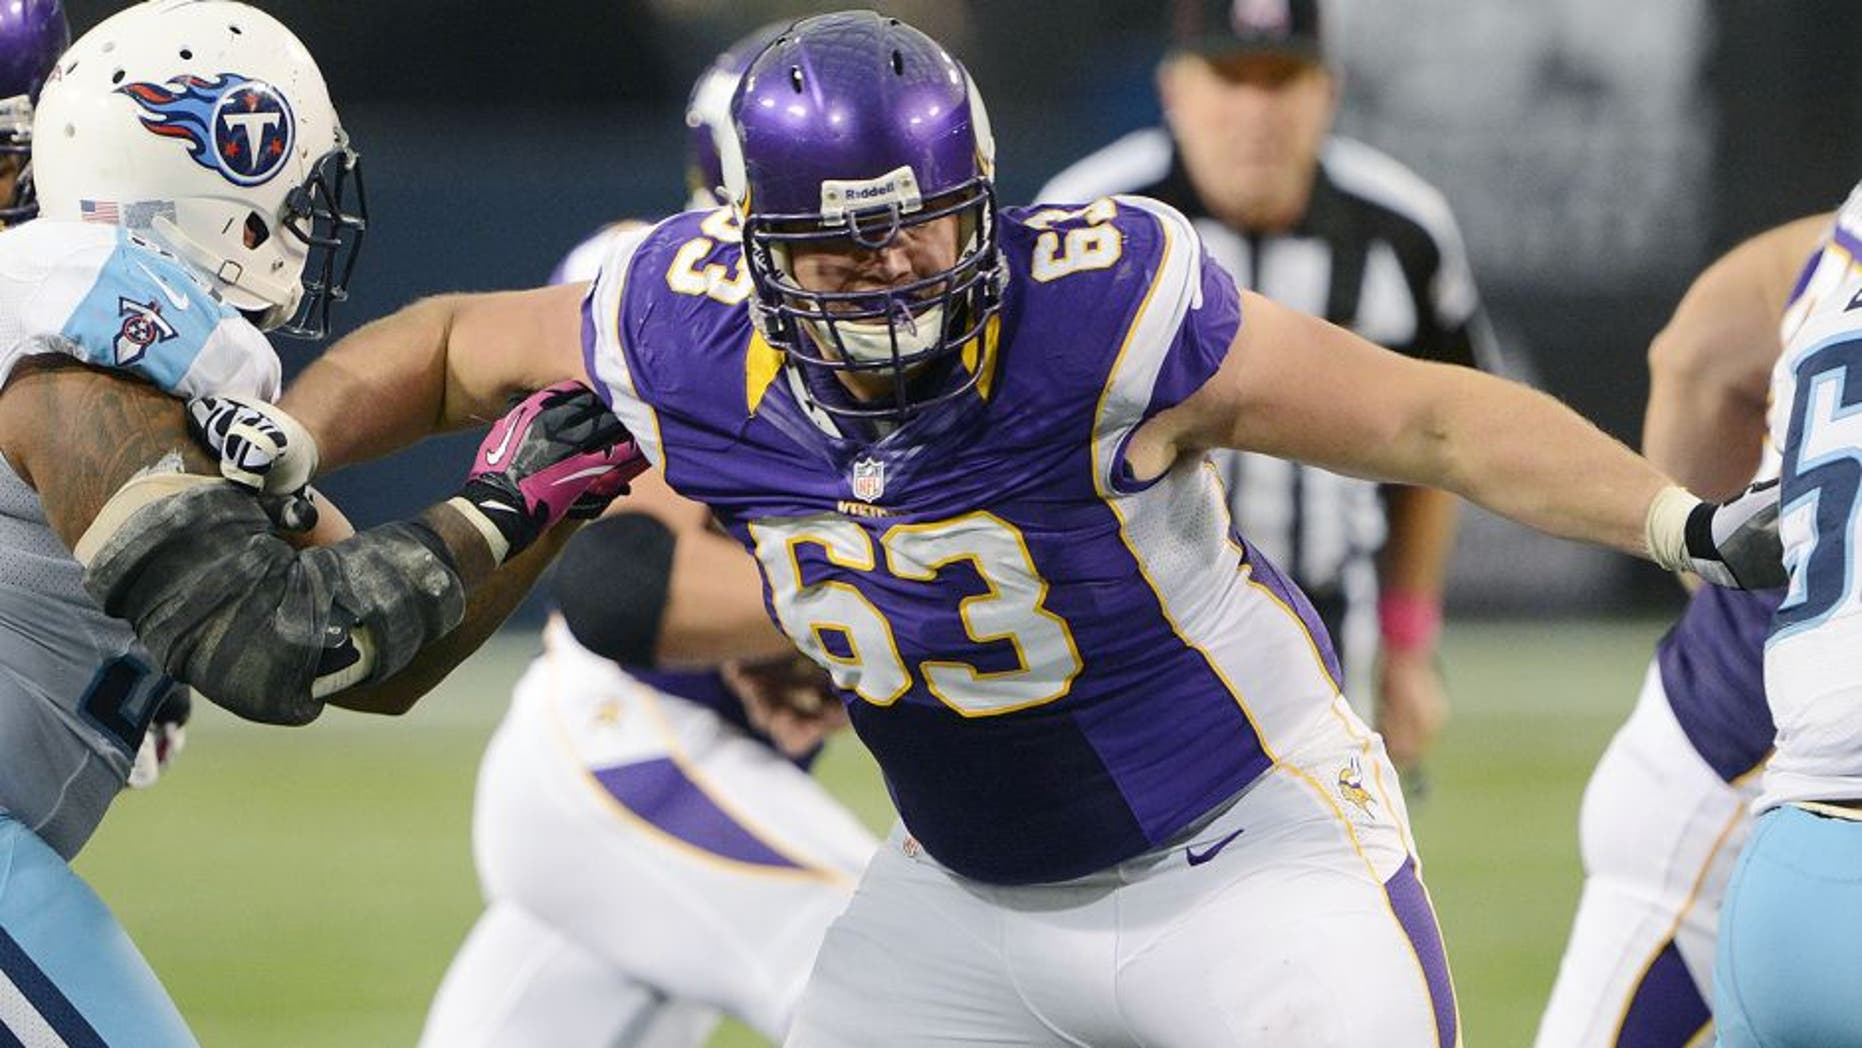 MINNEAPOLIS - OCTOBER 7: Brandon Fusco #63 of the Minnesota Vikings blocks during an NFL game against the Tennessee Titans at Mall of America Field at the Hubert H. Humphrey Metrodome on October 7, 2012 in Minneapolis, Minnesota. (Photo by Tom Dahlin/Getty Images)